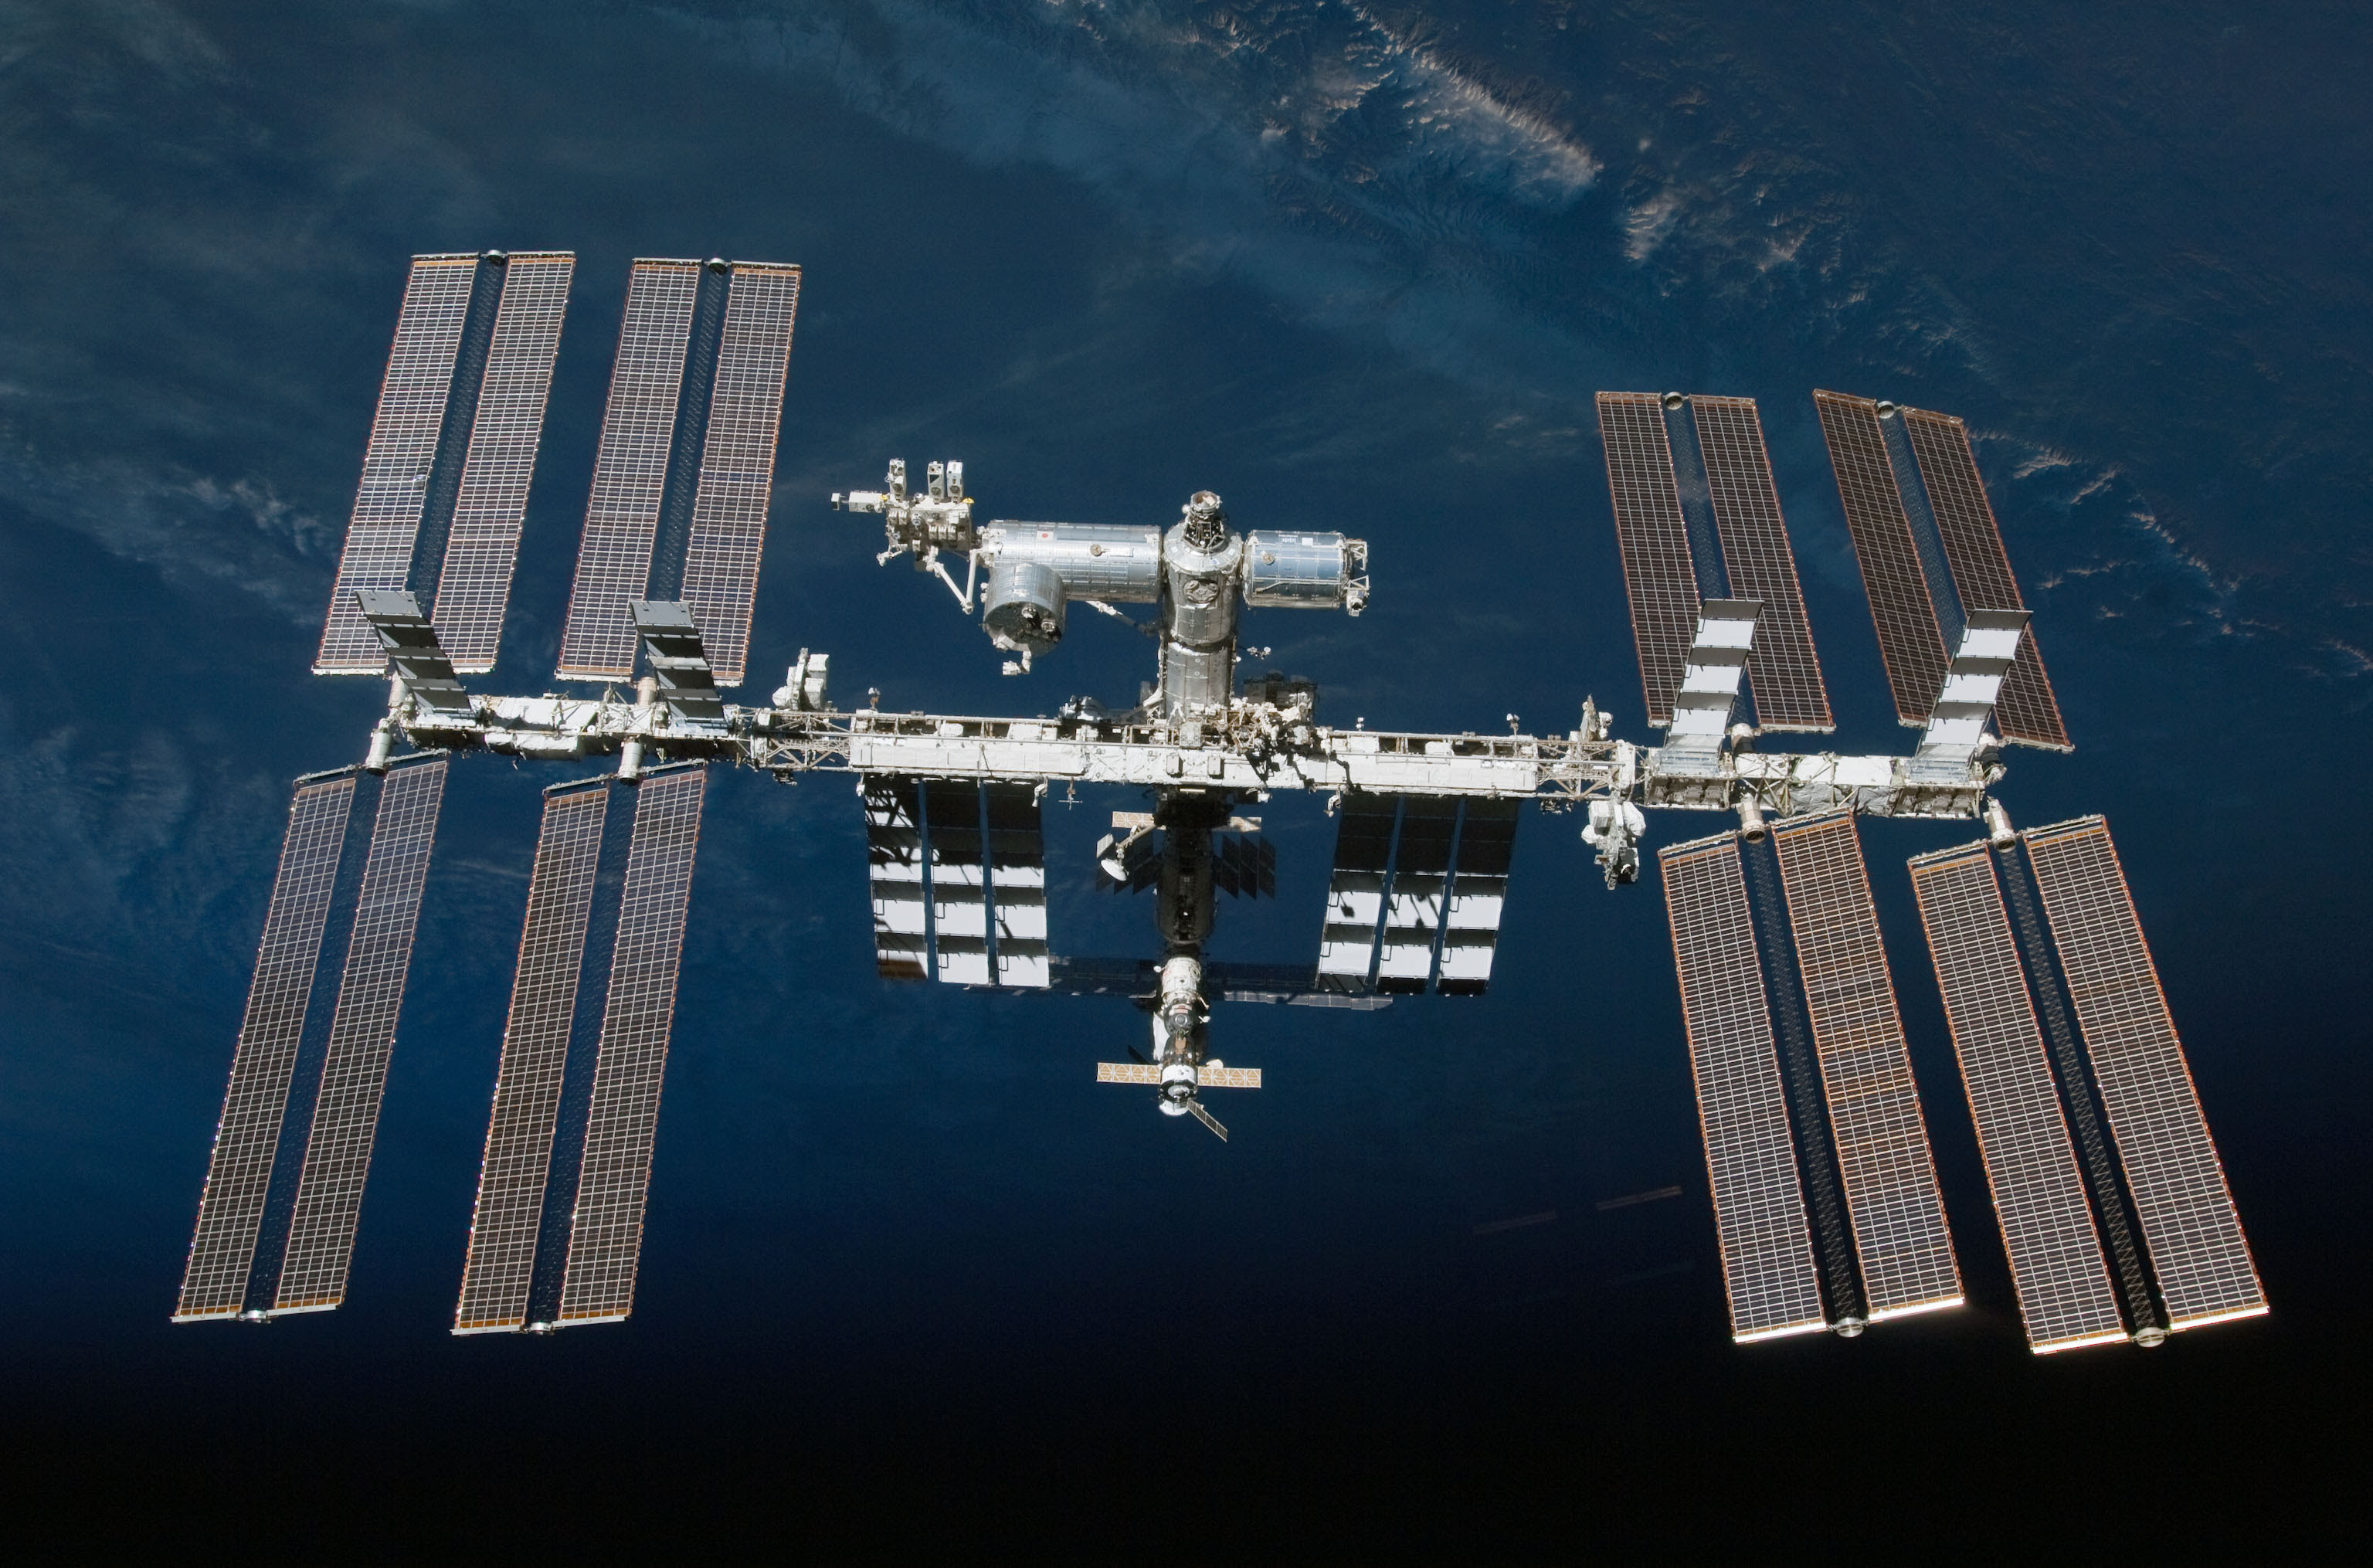 Iss photos and wallpapers earth blog - Wallpaper iss ...